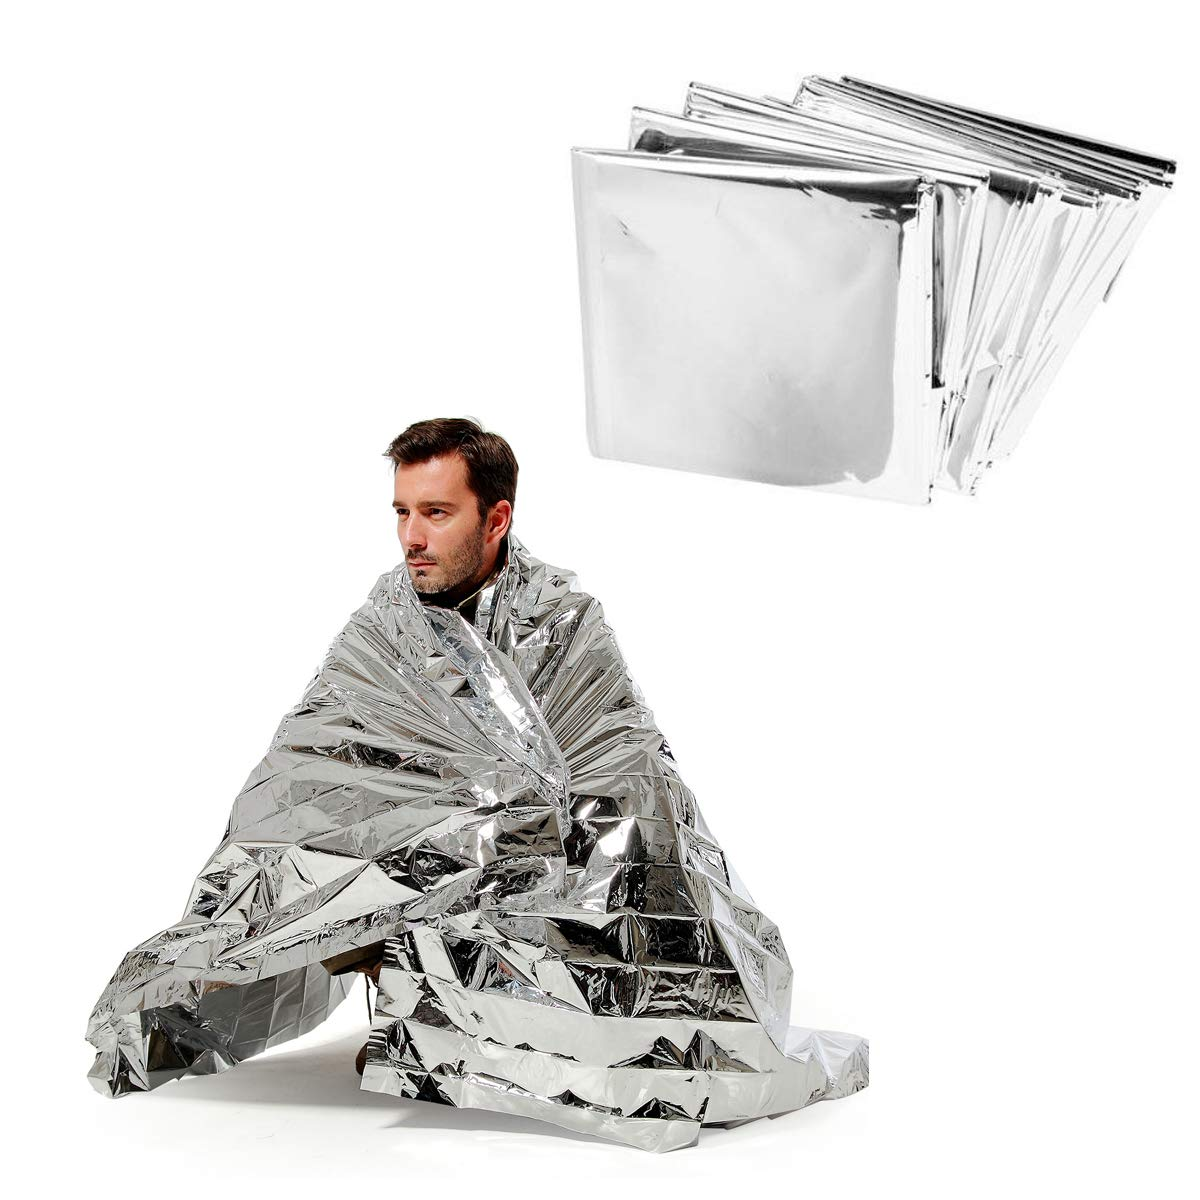 ANGTUO 5 Pack Emergency Blanket Survival Reflective Thermal First Aid Foil Blanket, Silver